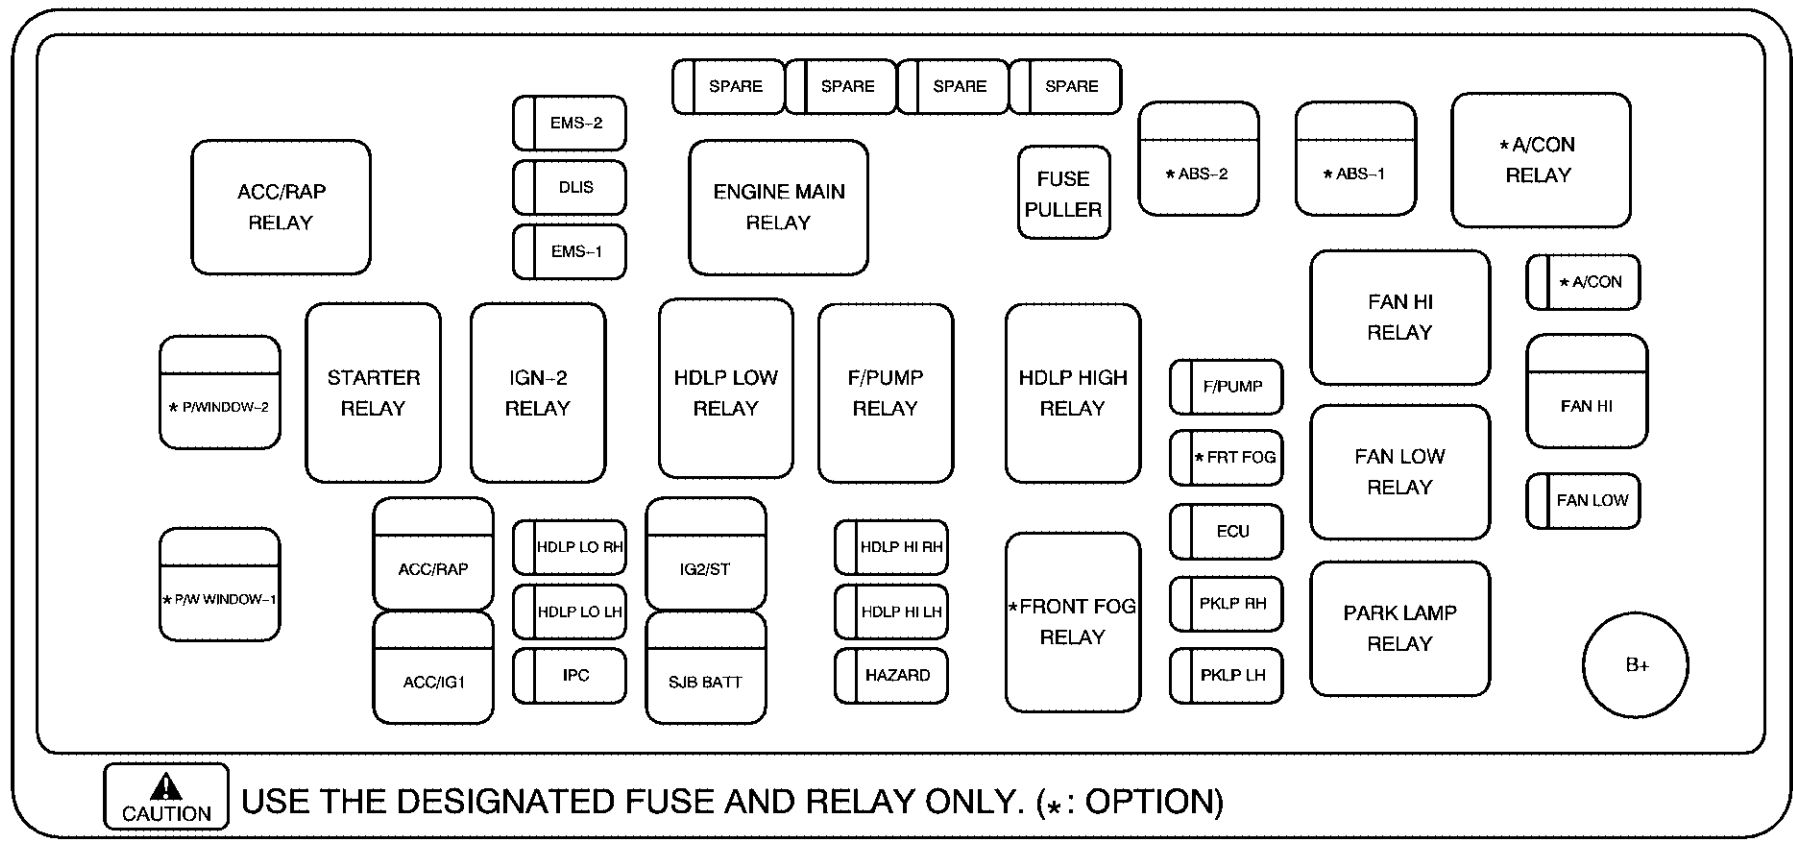 hight resolution of 2009 chevy aveo fuse box wiring diagram blogs chevy traverse 2009 chevy aveo fuse box trusted